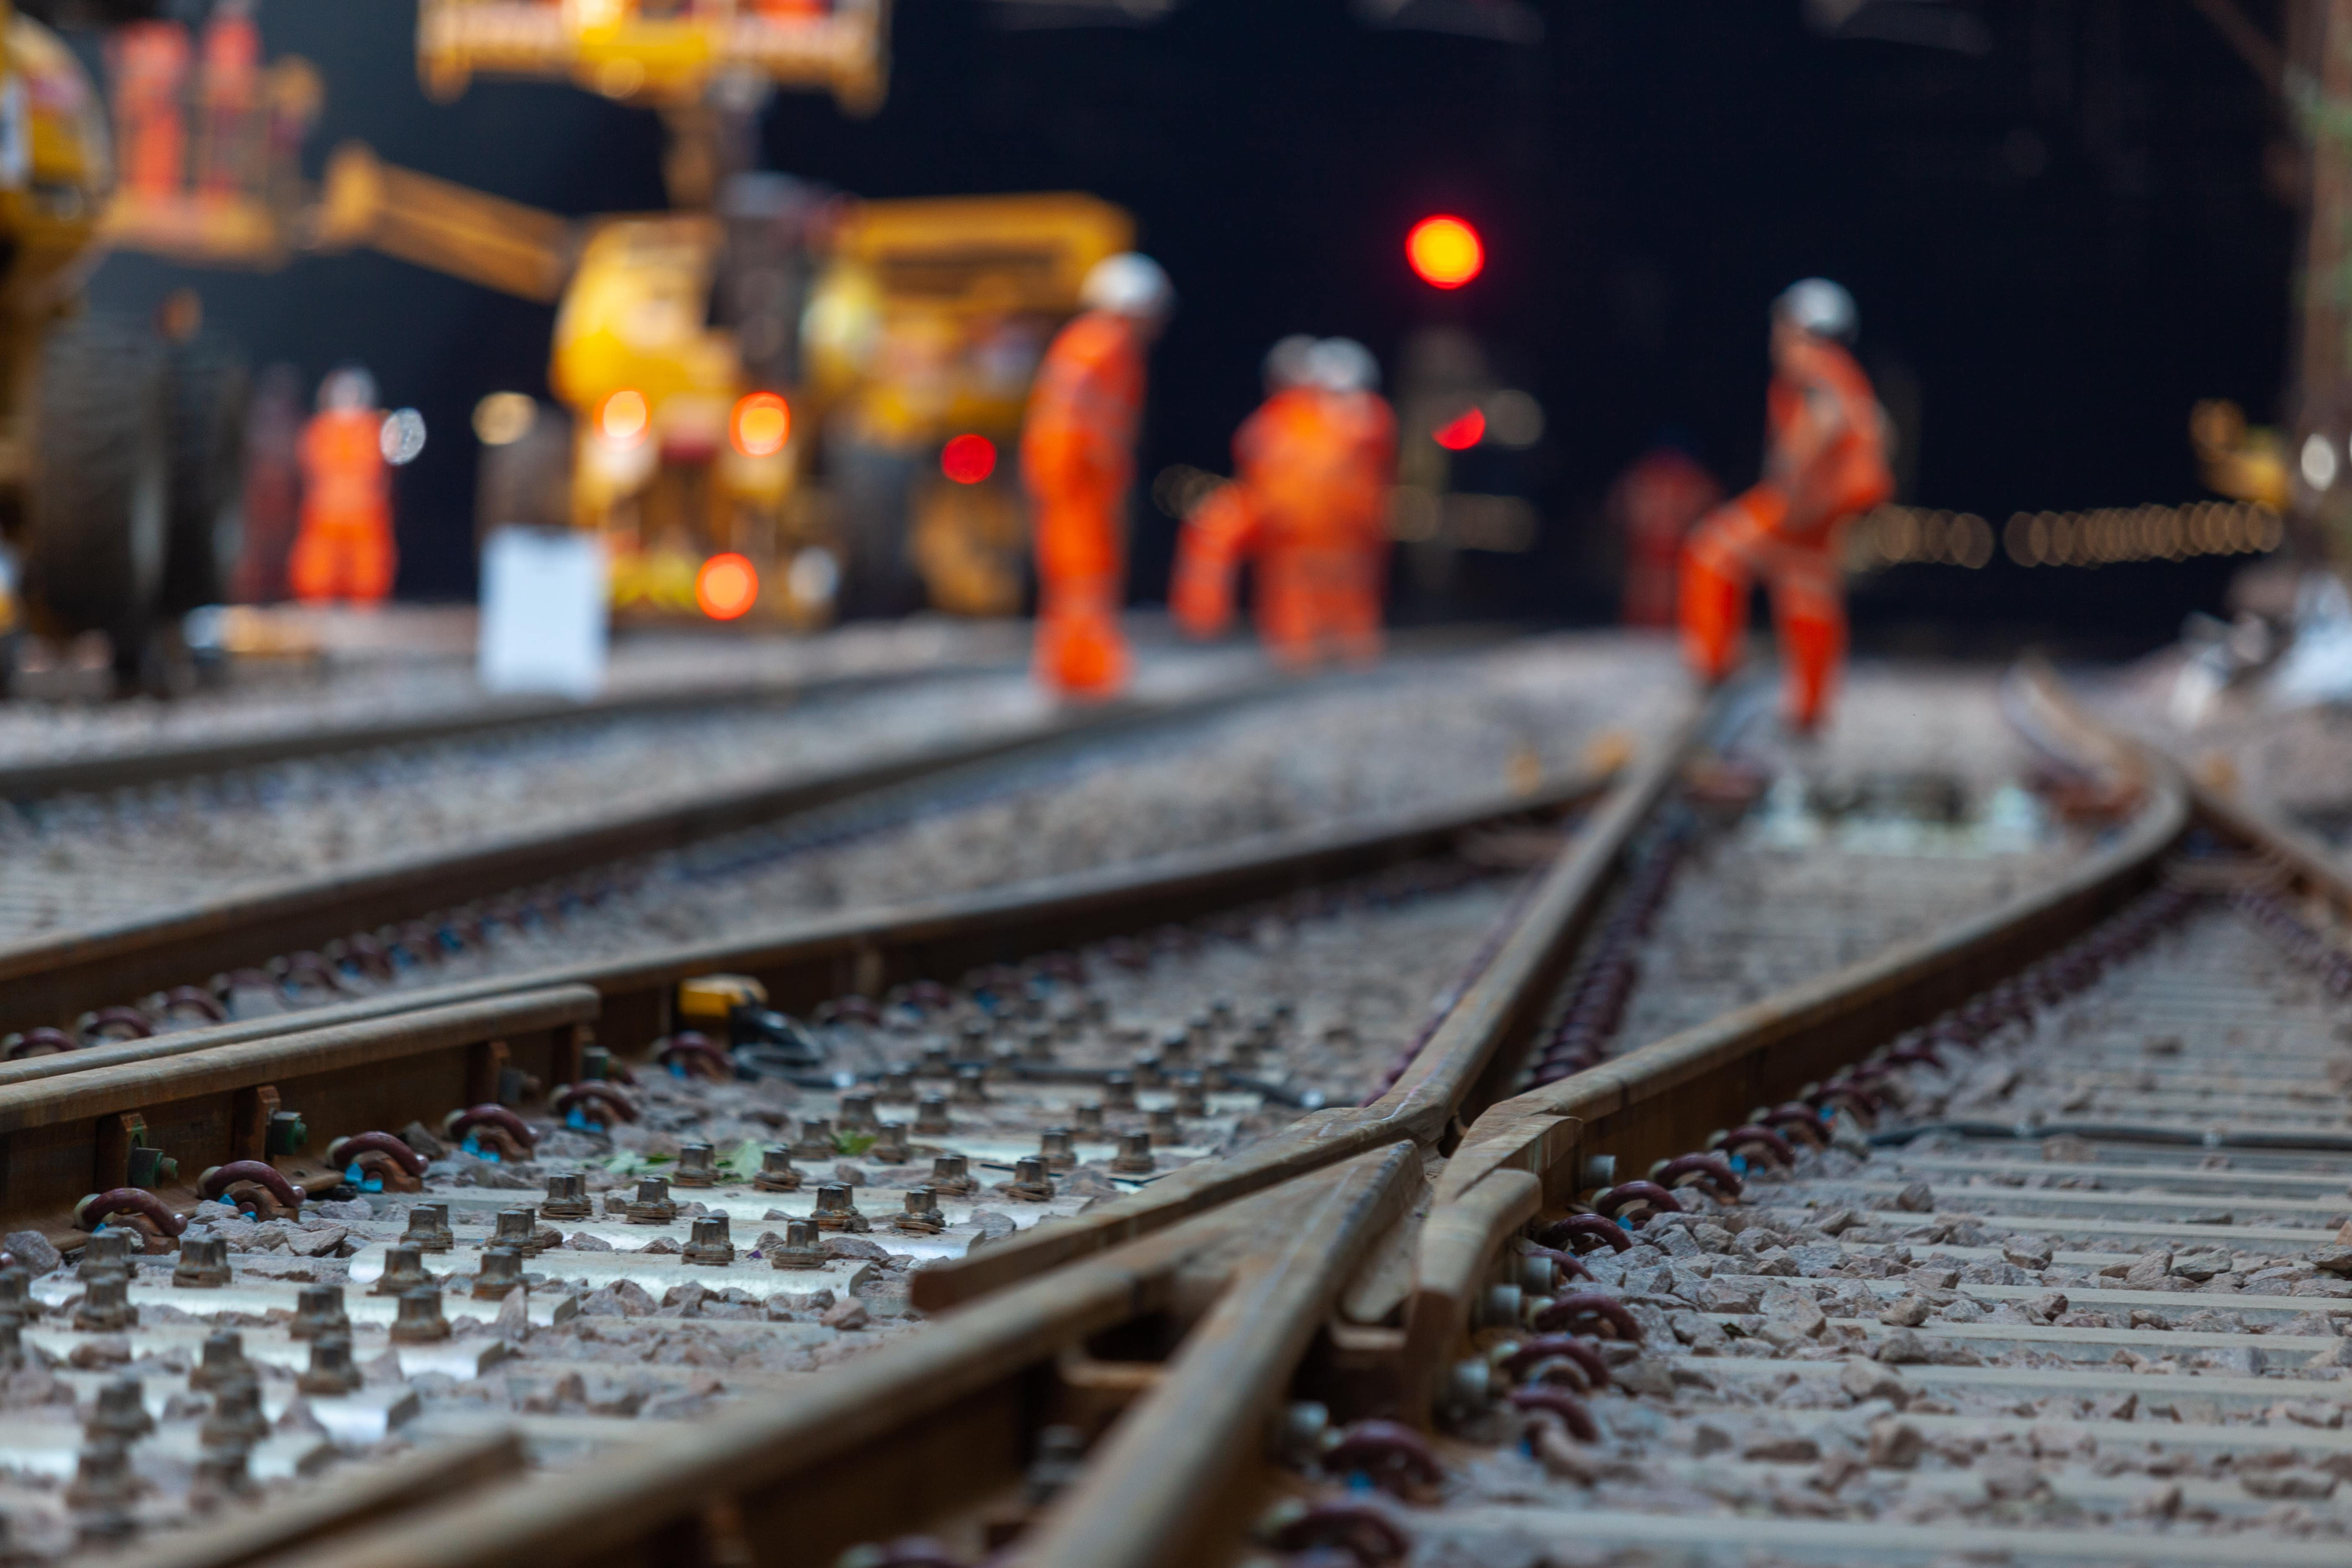 Putting the UK's economic recovery on the right track